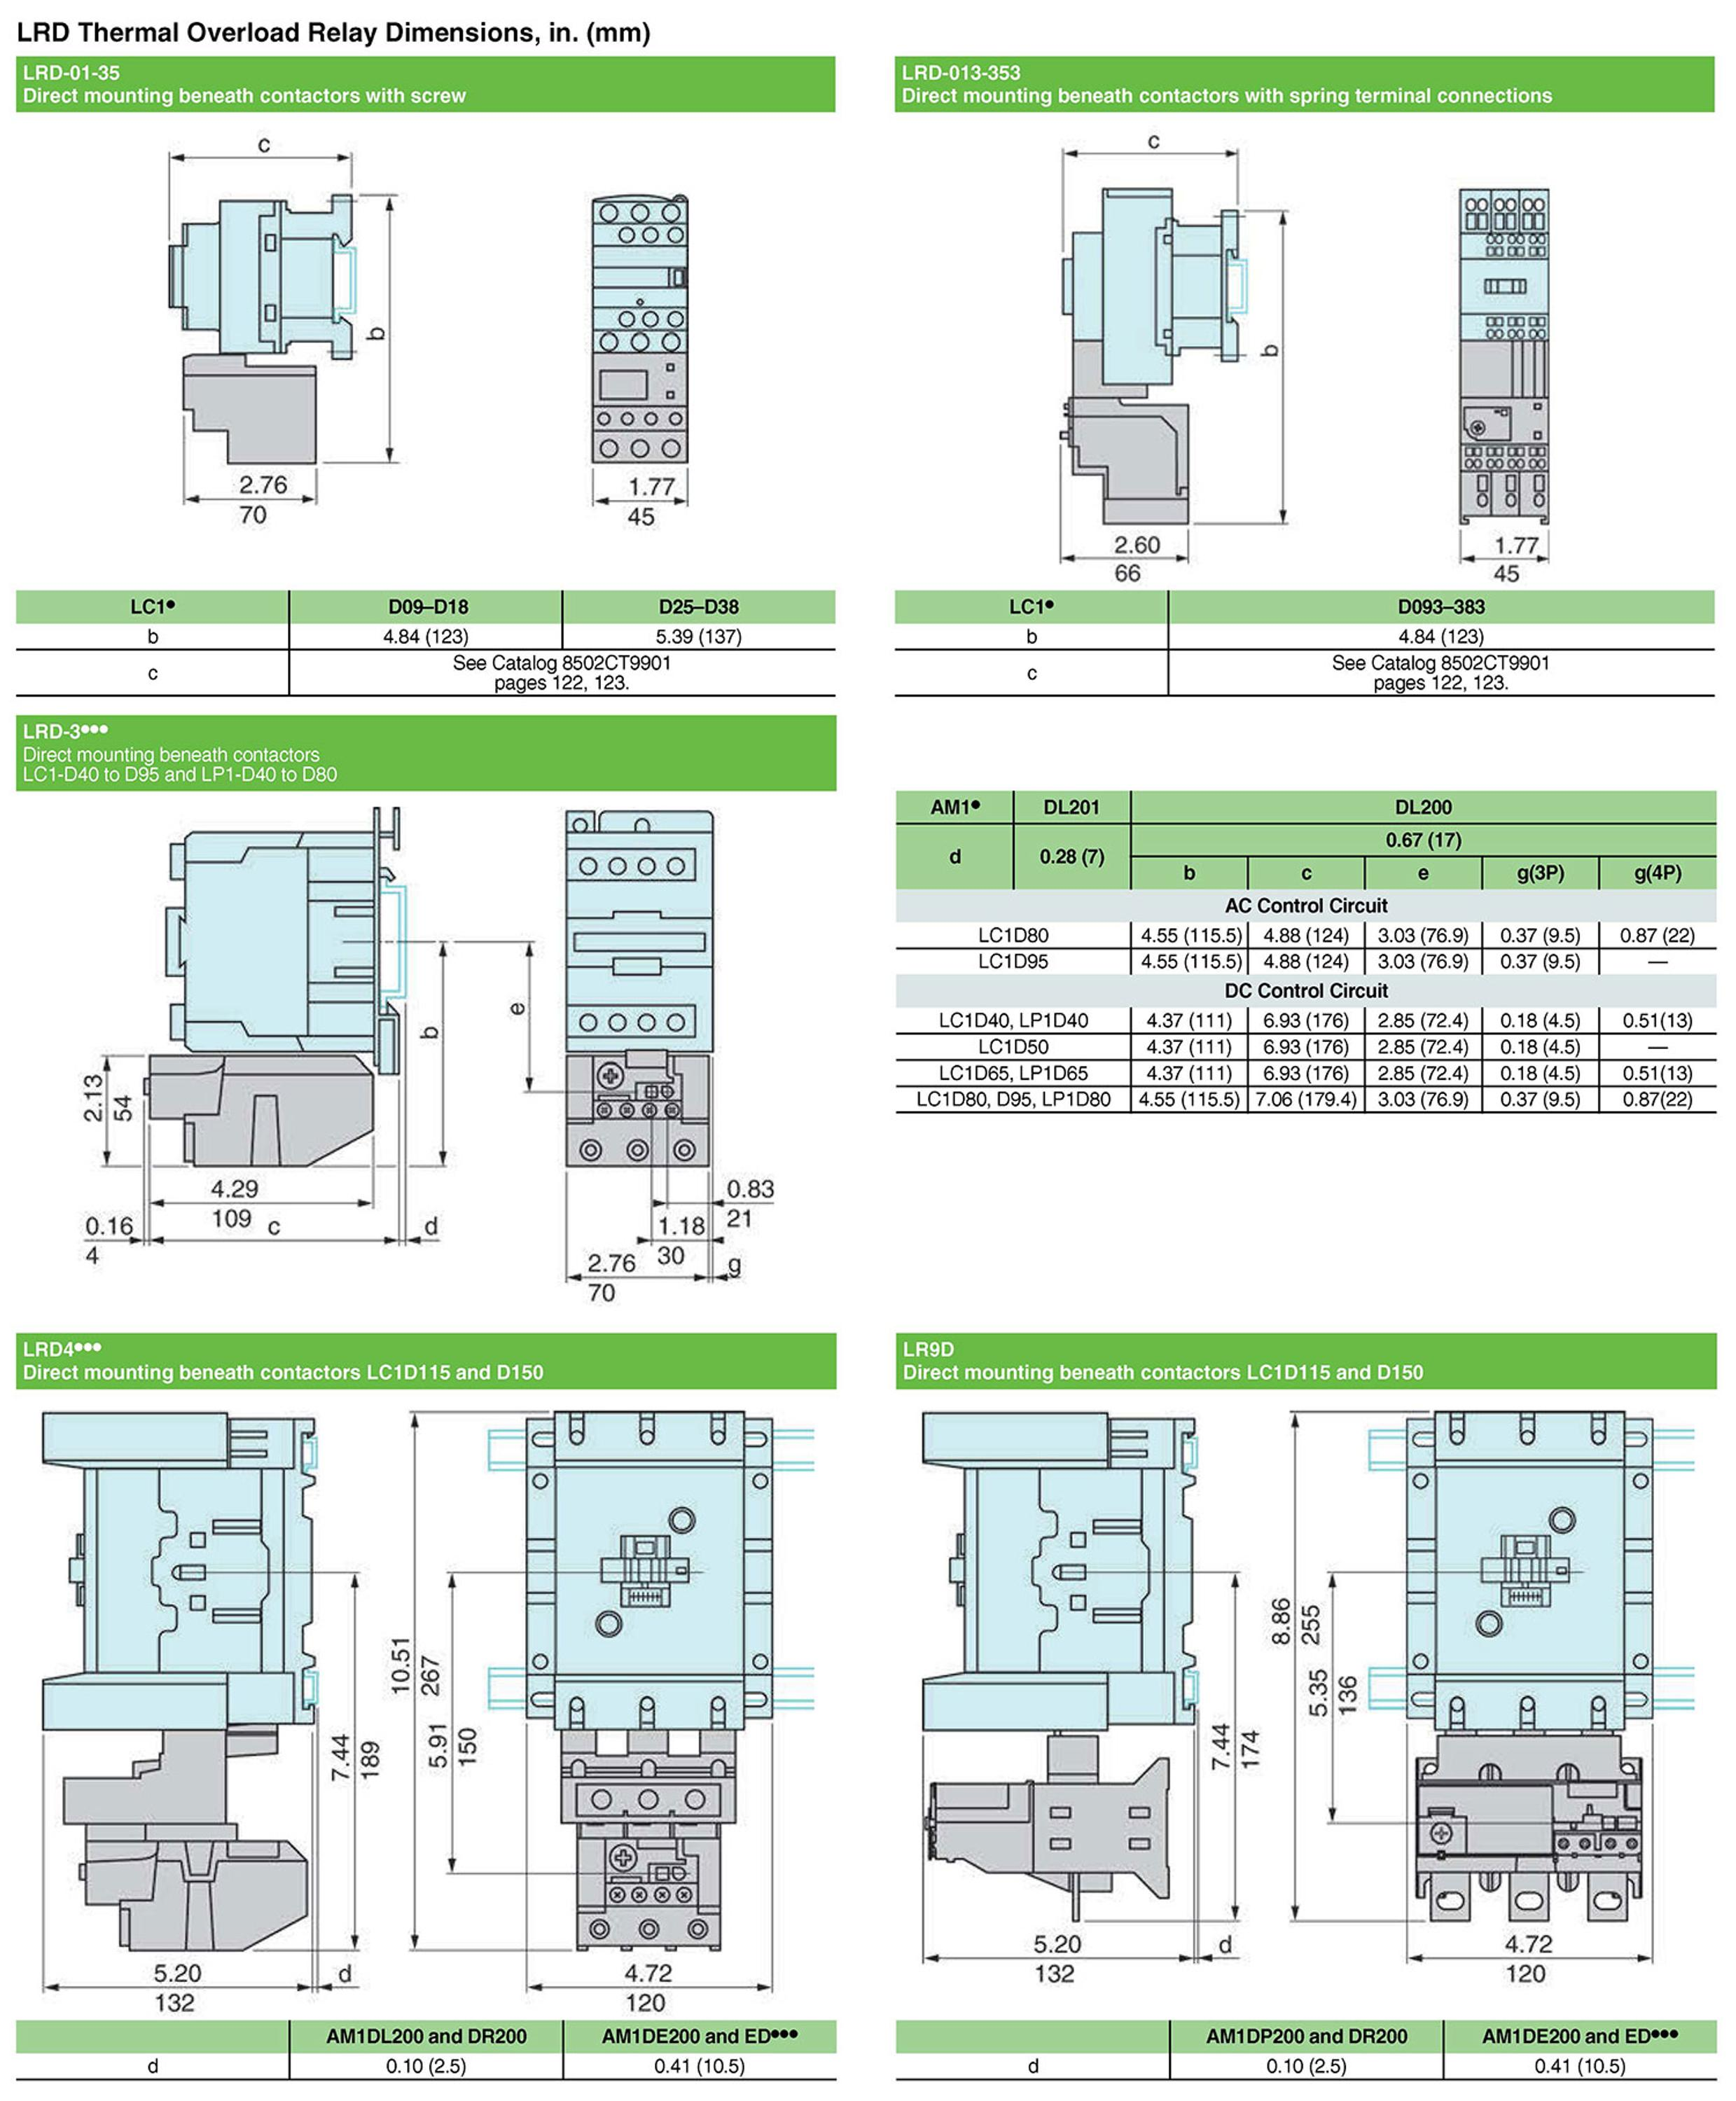 schneider electric contactor wiring diagram service process telemecanique lrd32